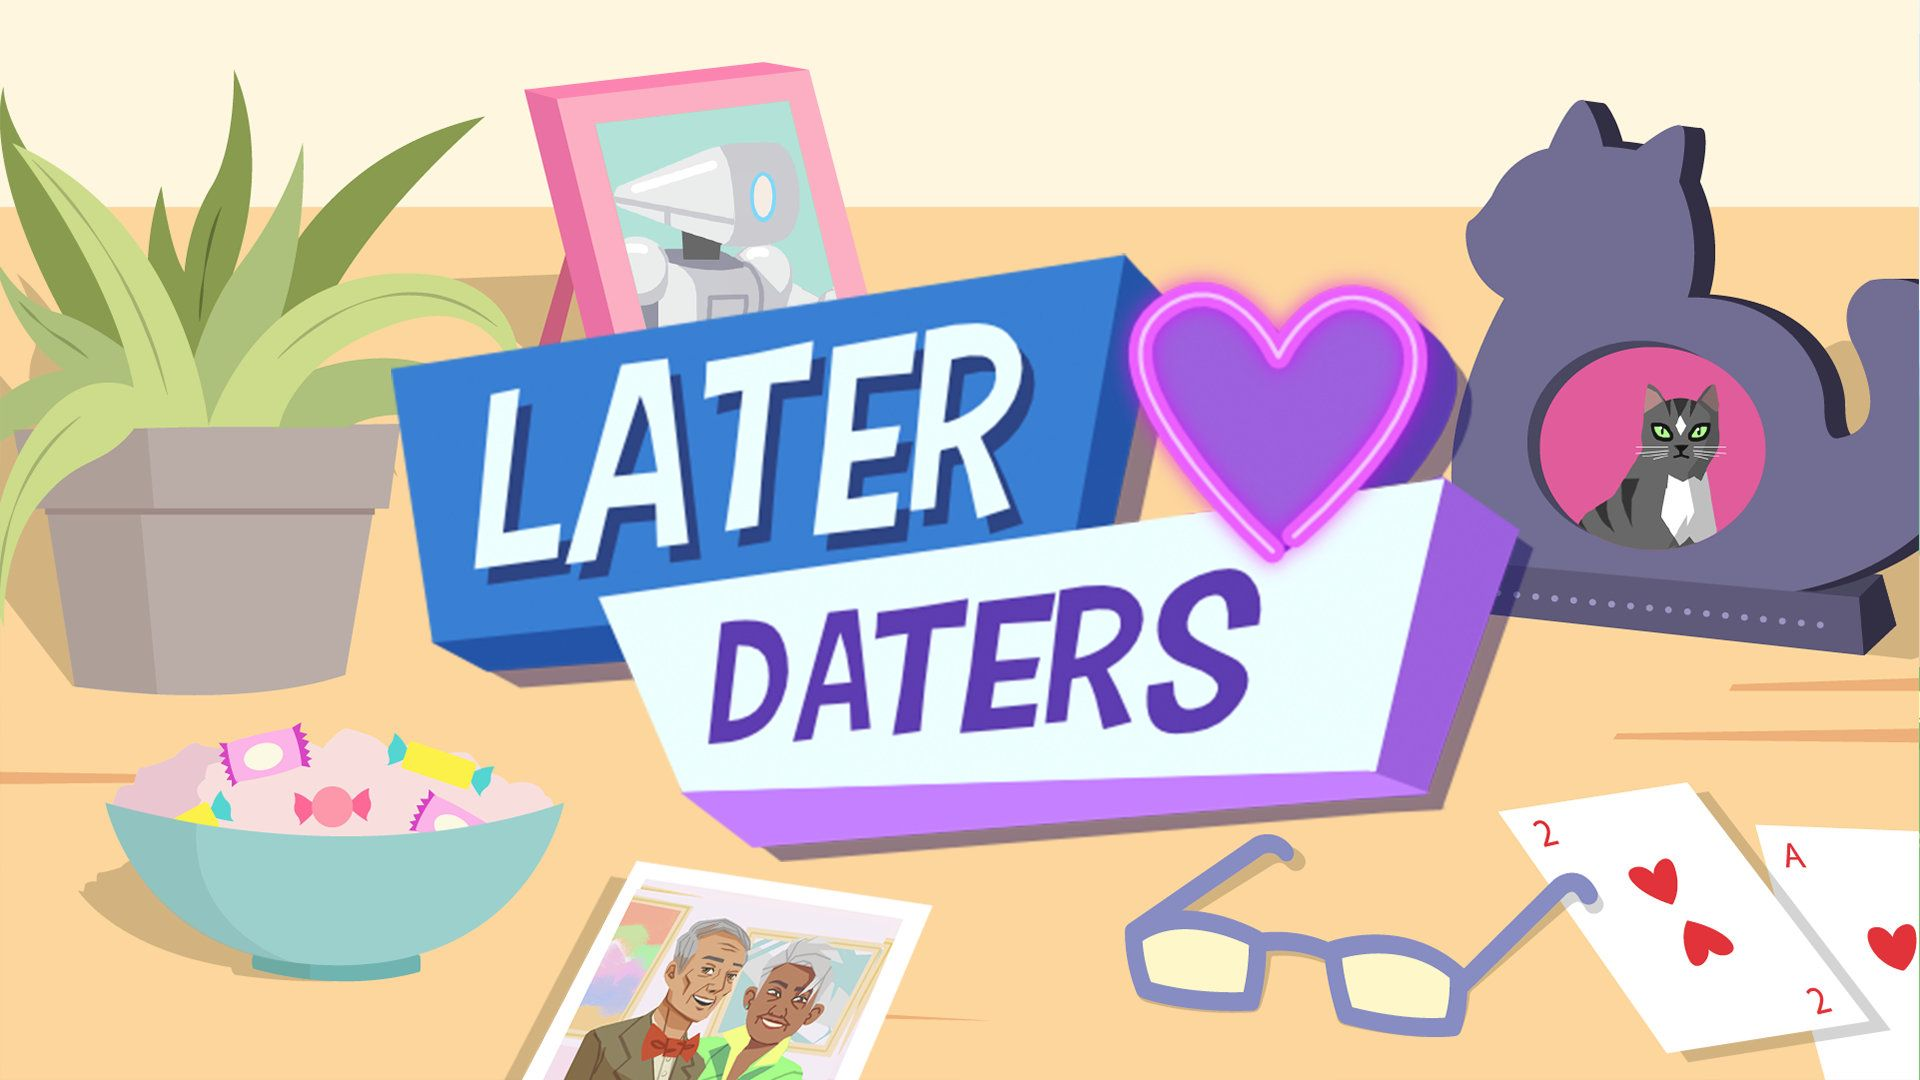 Later Daters: Part Two Launches on Switch Later this Month